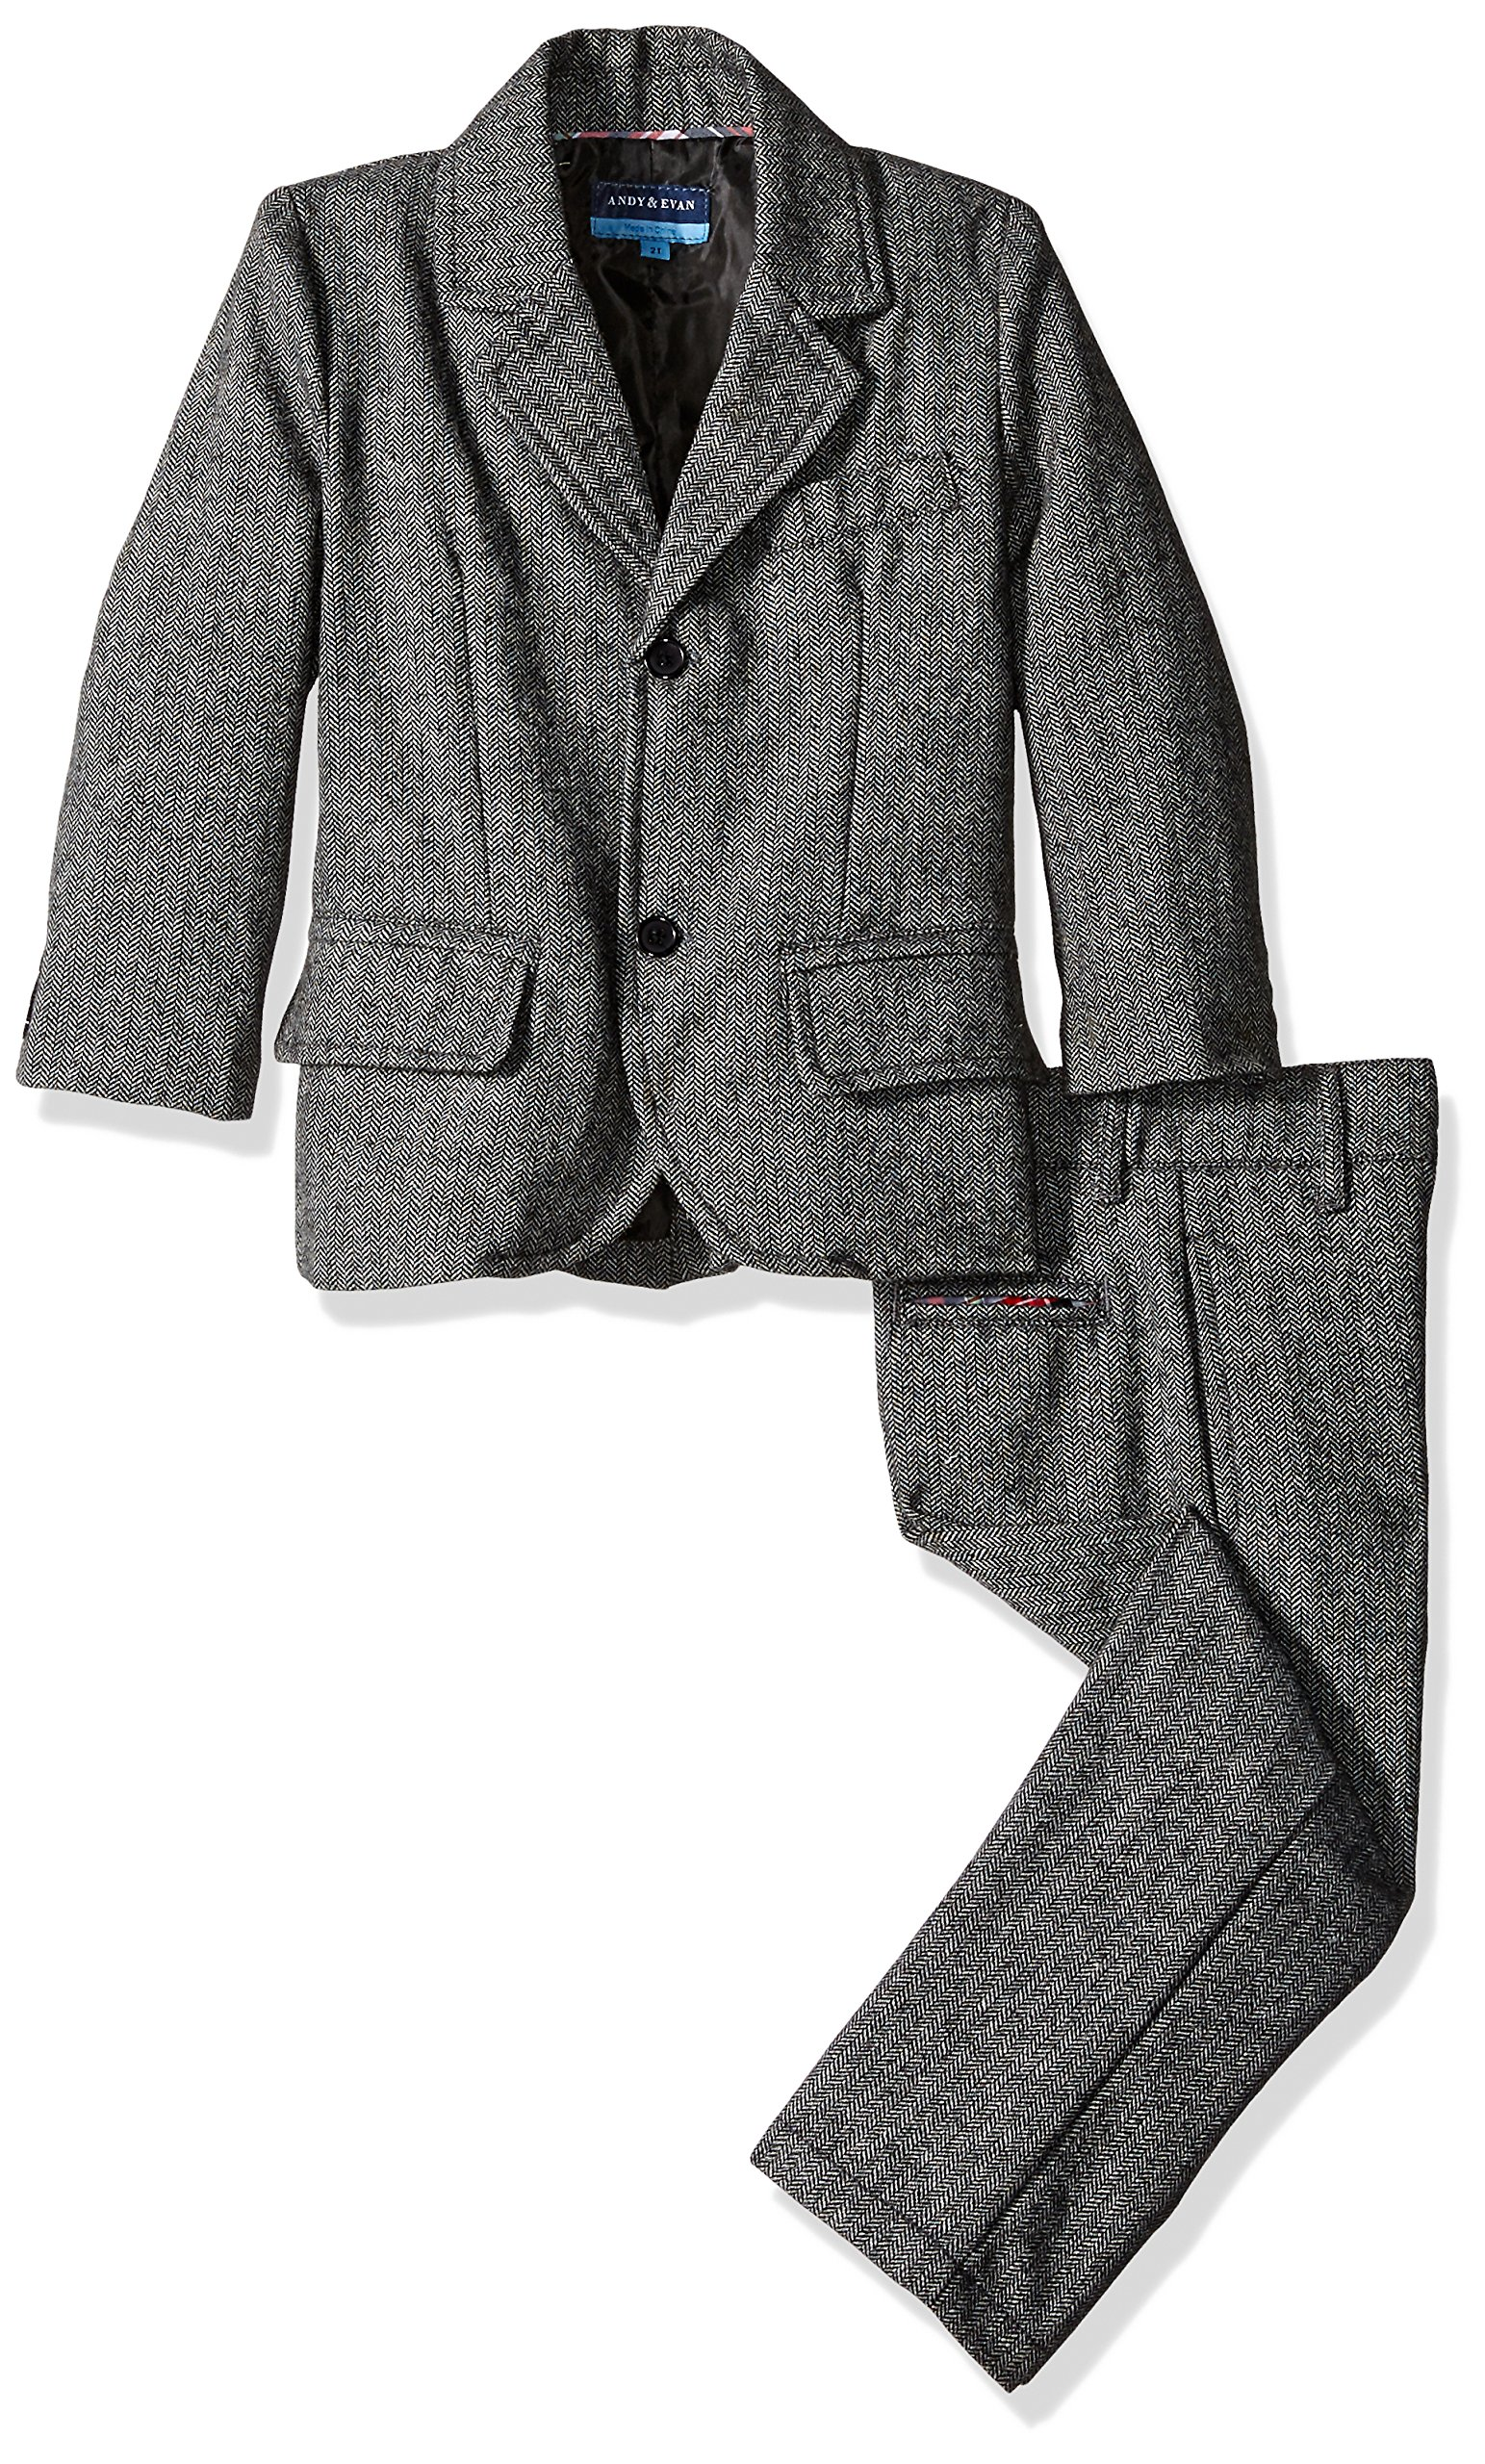 Andy & Evan Little Boys' Herringbone Suit 2 Piece Set, Black, 7